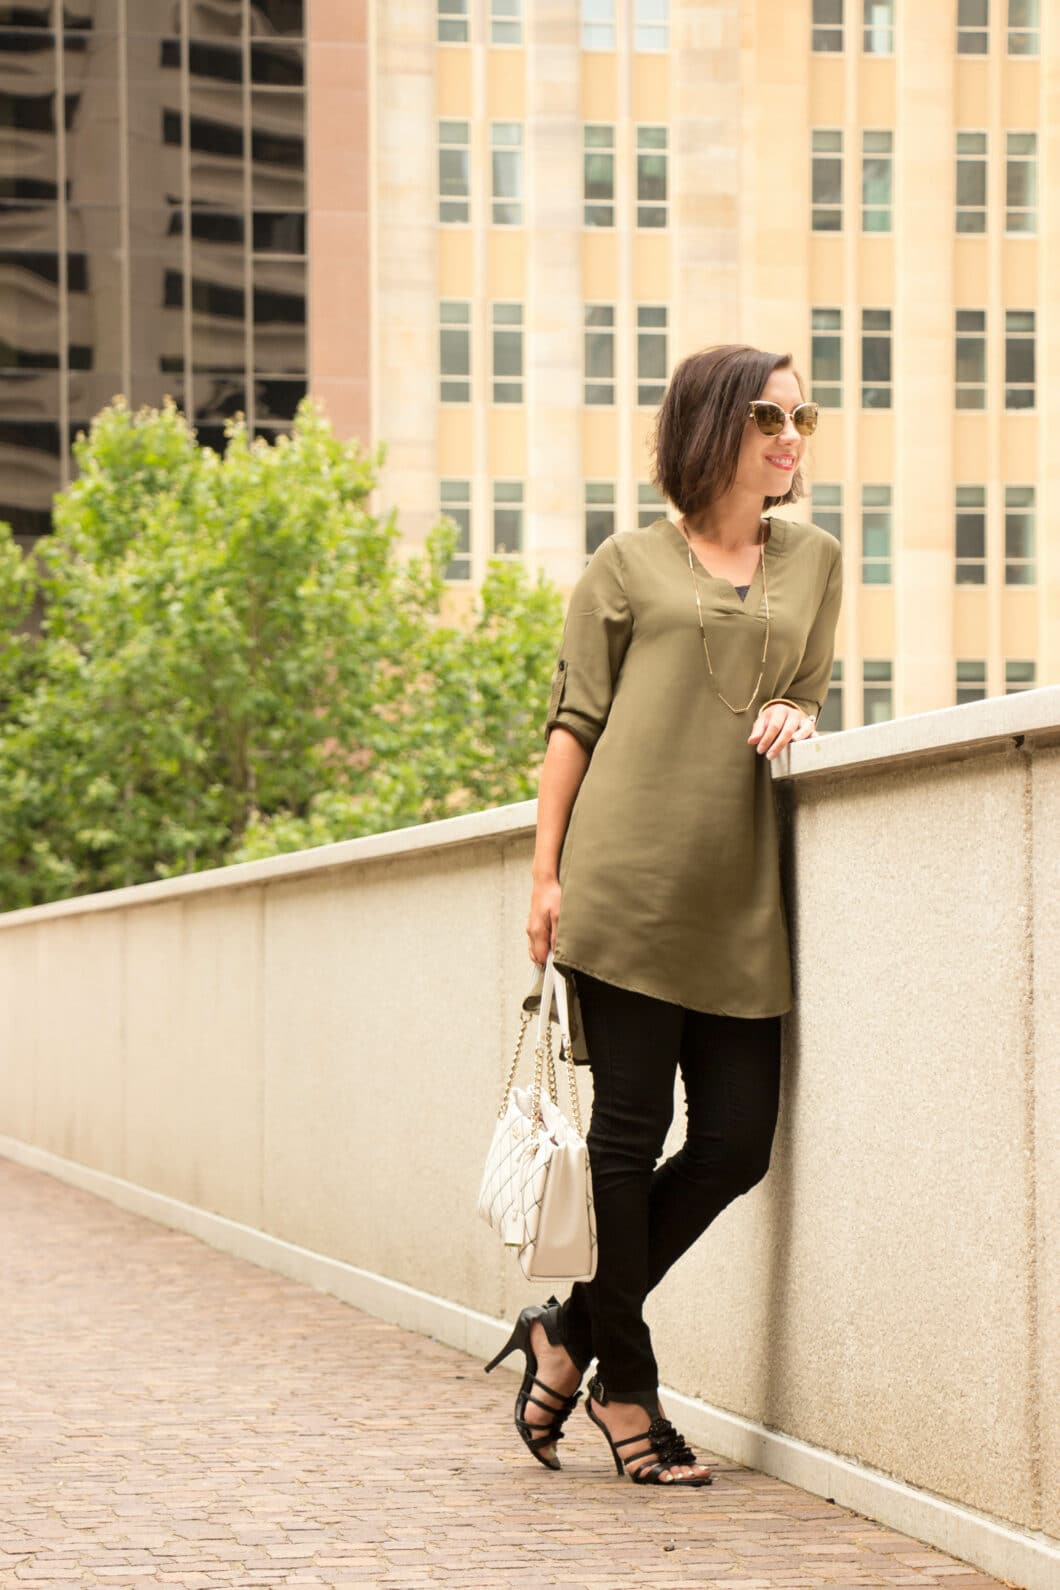 Casual & Chic Featuring a Green Tunic From Chic Me